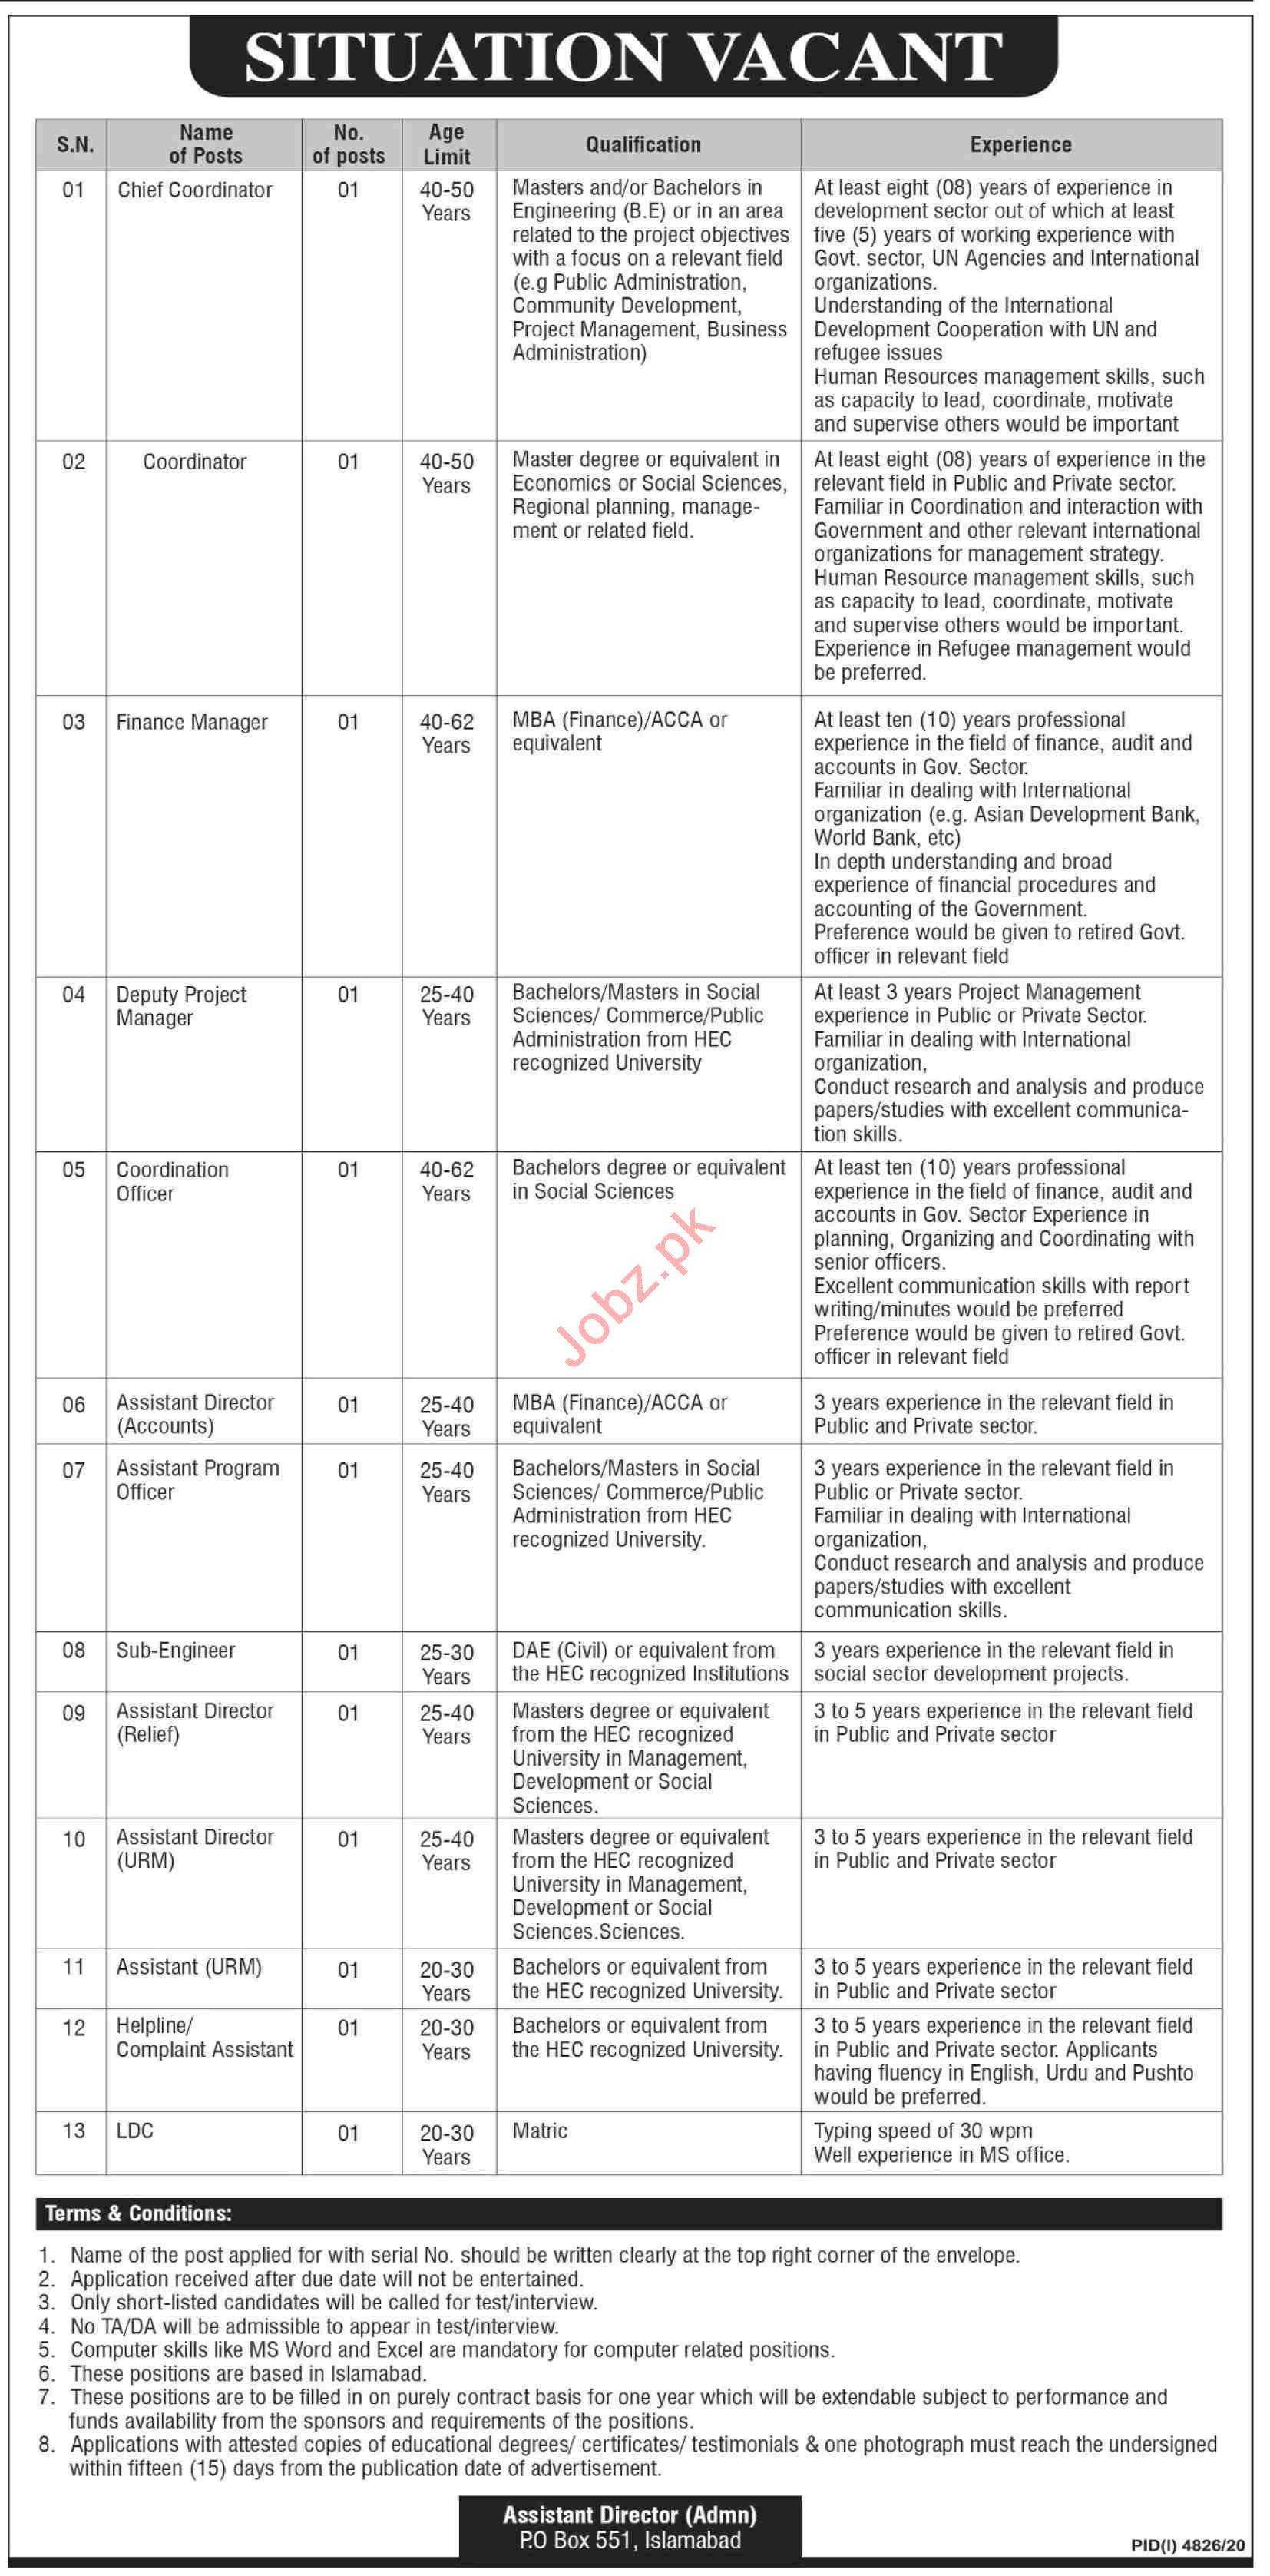 P O Box 551 Islamabad Jobs 2021 Finance Manager & Assistant